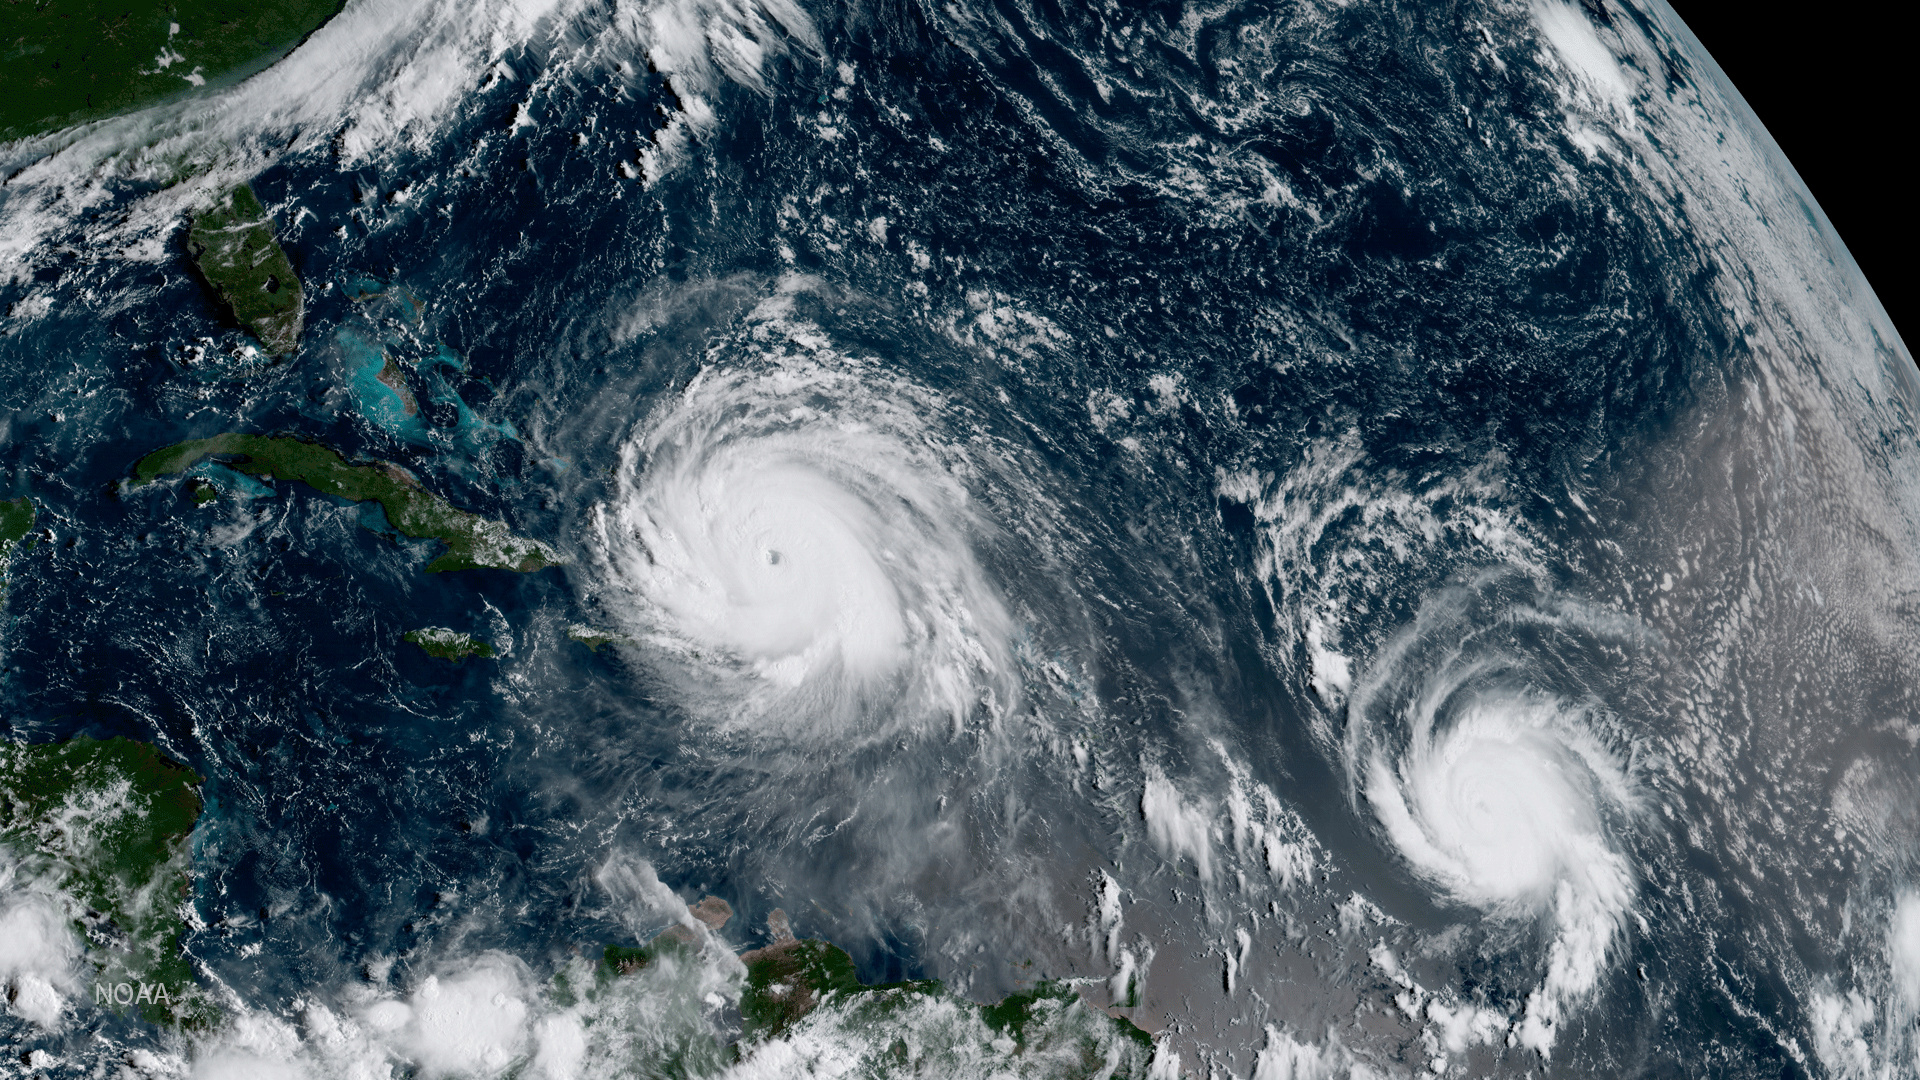 Hurricane Irma (L) and Hurricane Jose are pictured  in the Atlantic Ocean in this September 7, 2017 NOAA satellite handout photo. NOAA/Handout via REUTERS    ATTENTION EDITORS - THIS IMAGE WAS PROVIDED BY A THIRD PARTY. - RC1B4FFD9AD0